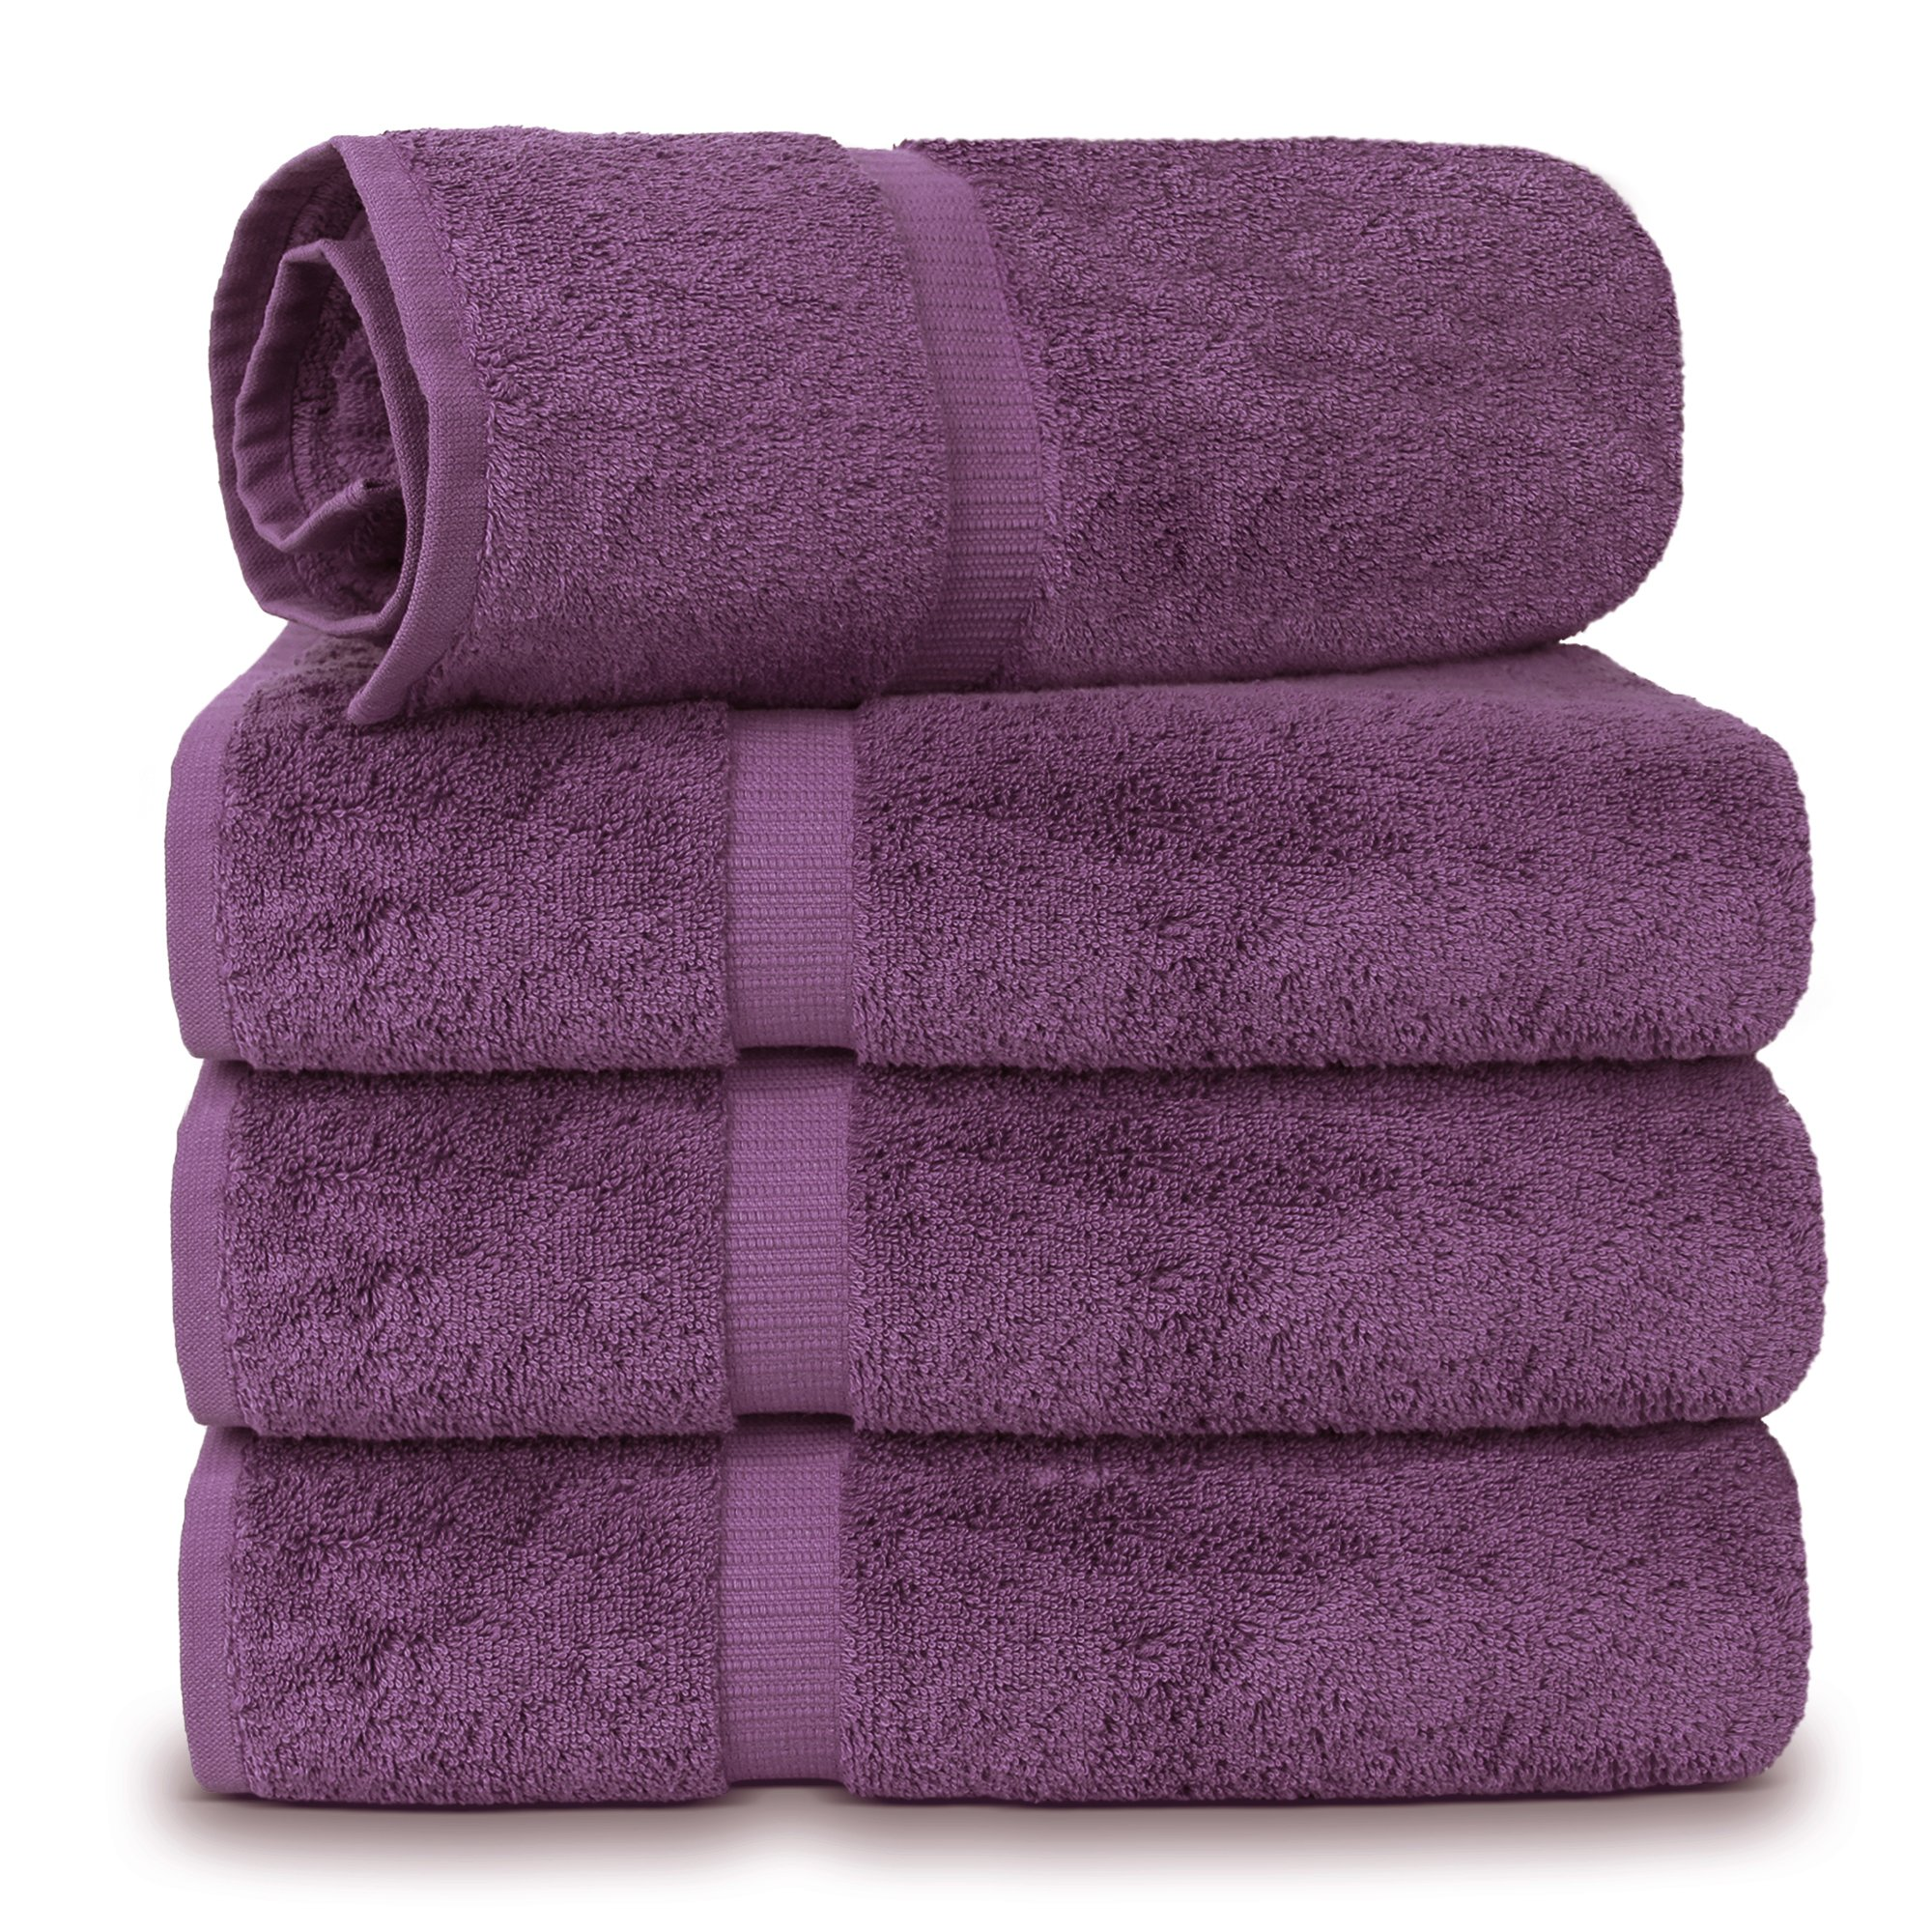 4 Piece Turkish Luxury Turkish Cotton Towel Set (Plum) - Eco Friendly, 4 Bath Towels by Turkuoise Turkish Towel